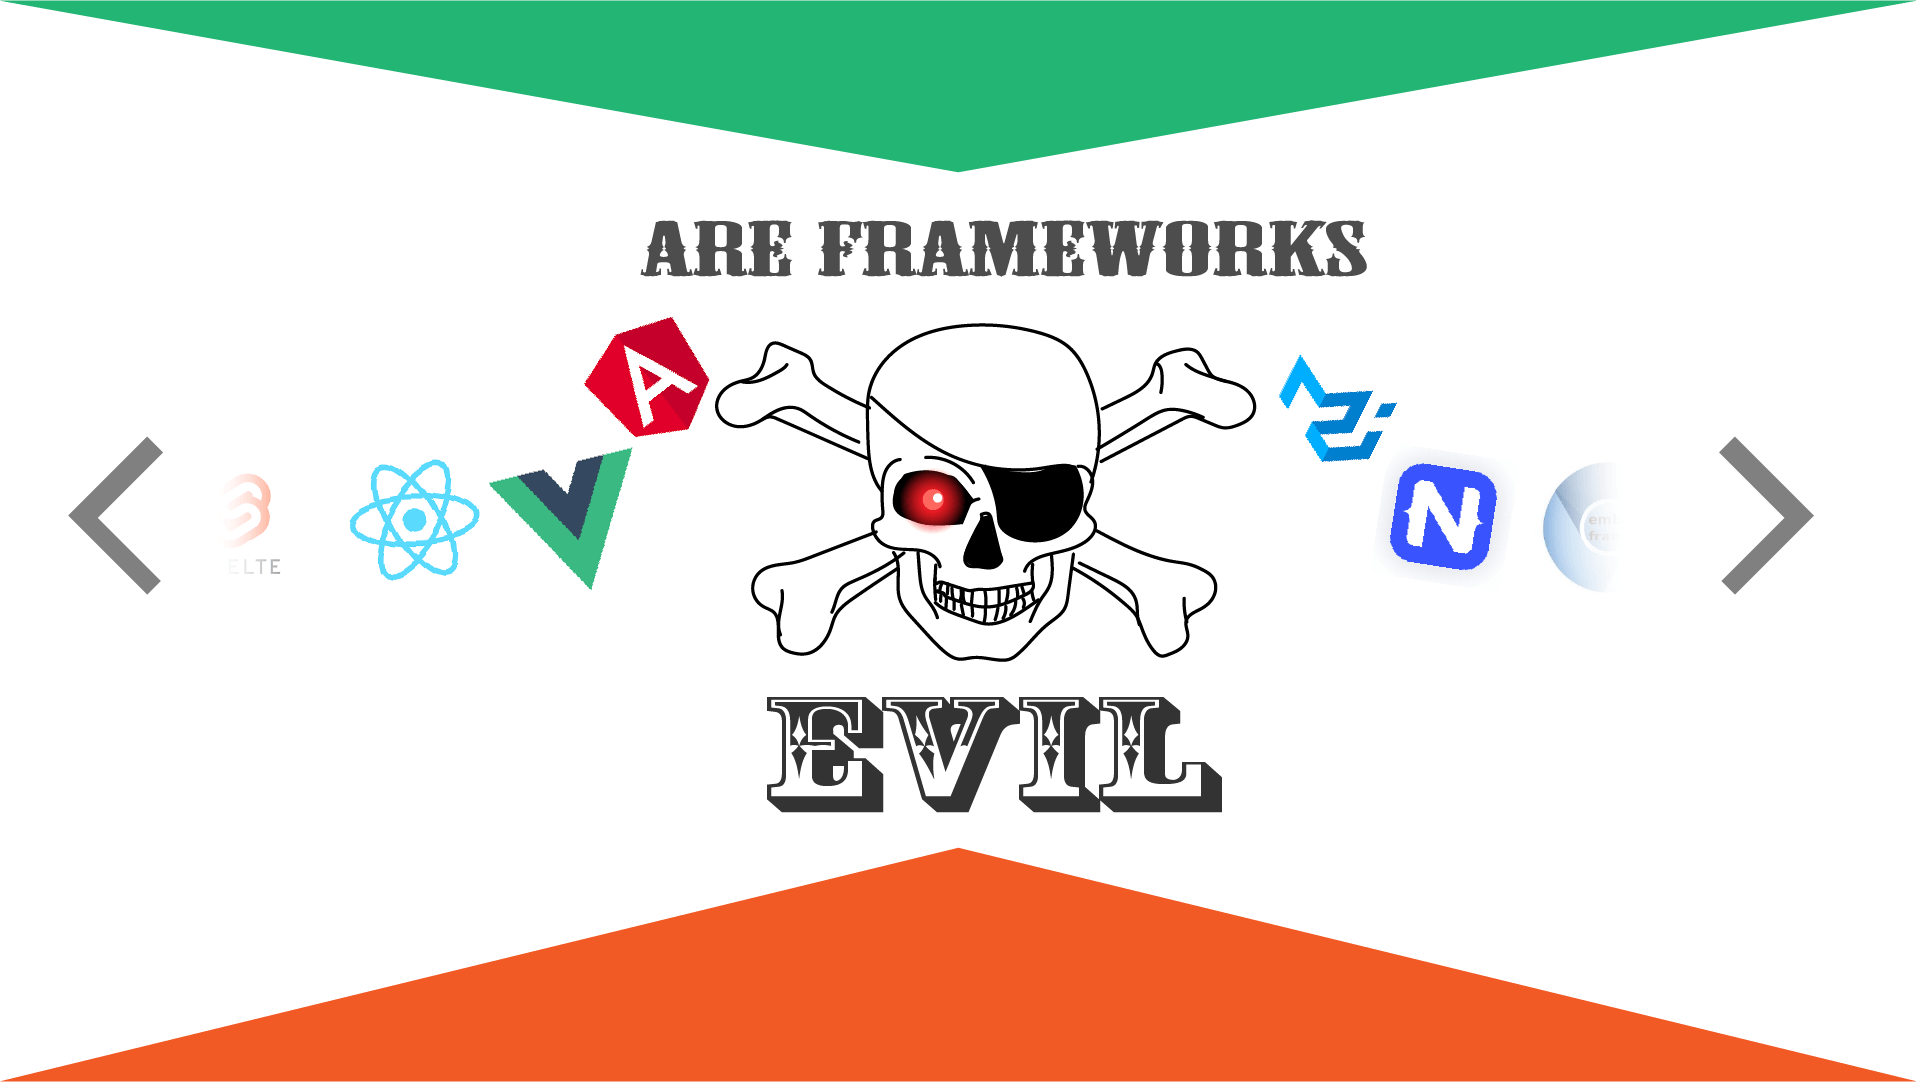 are frameworks evil?